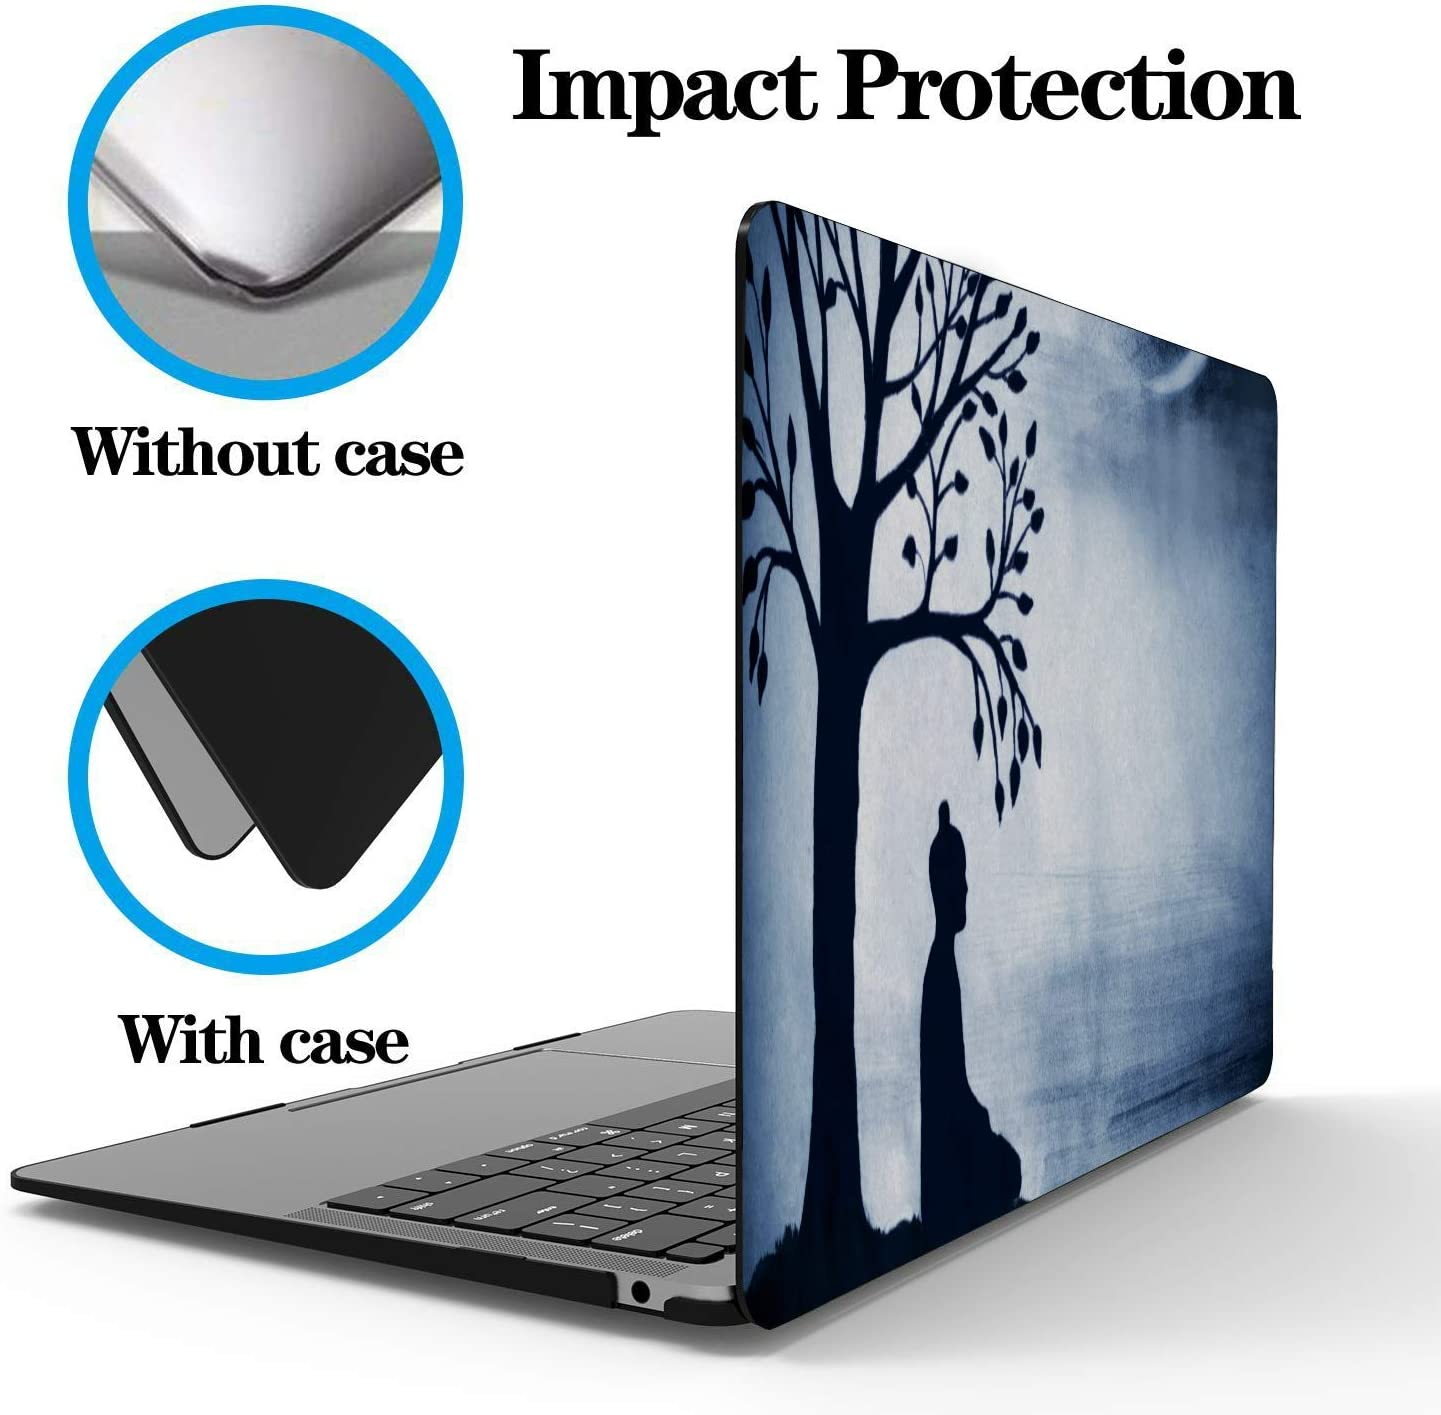 15 Inch Laptop Case Skiing Extreme Sports Entertainment Plastic Hard Shell Compatible Mac Air 11 Pro 13 15 Macbookpro Case Protection for MacBook 2016-2019 Version